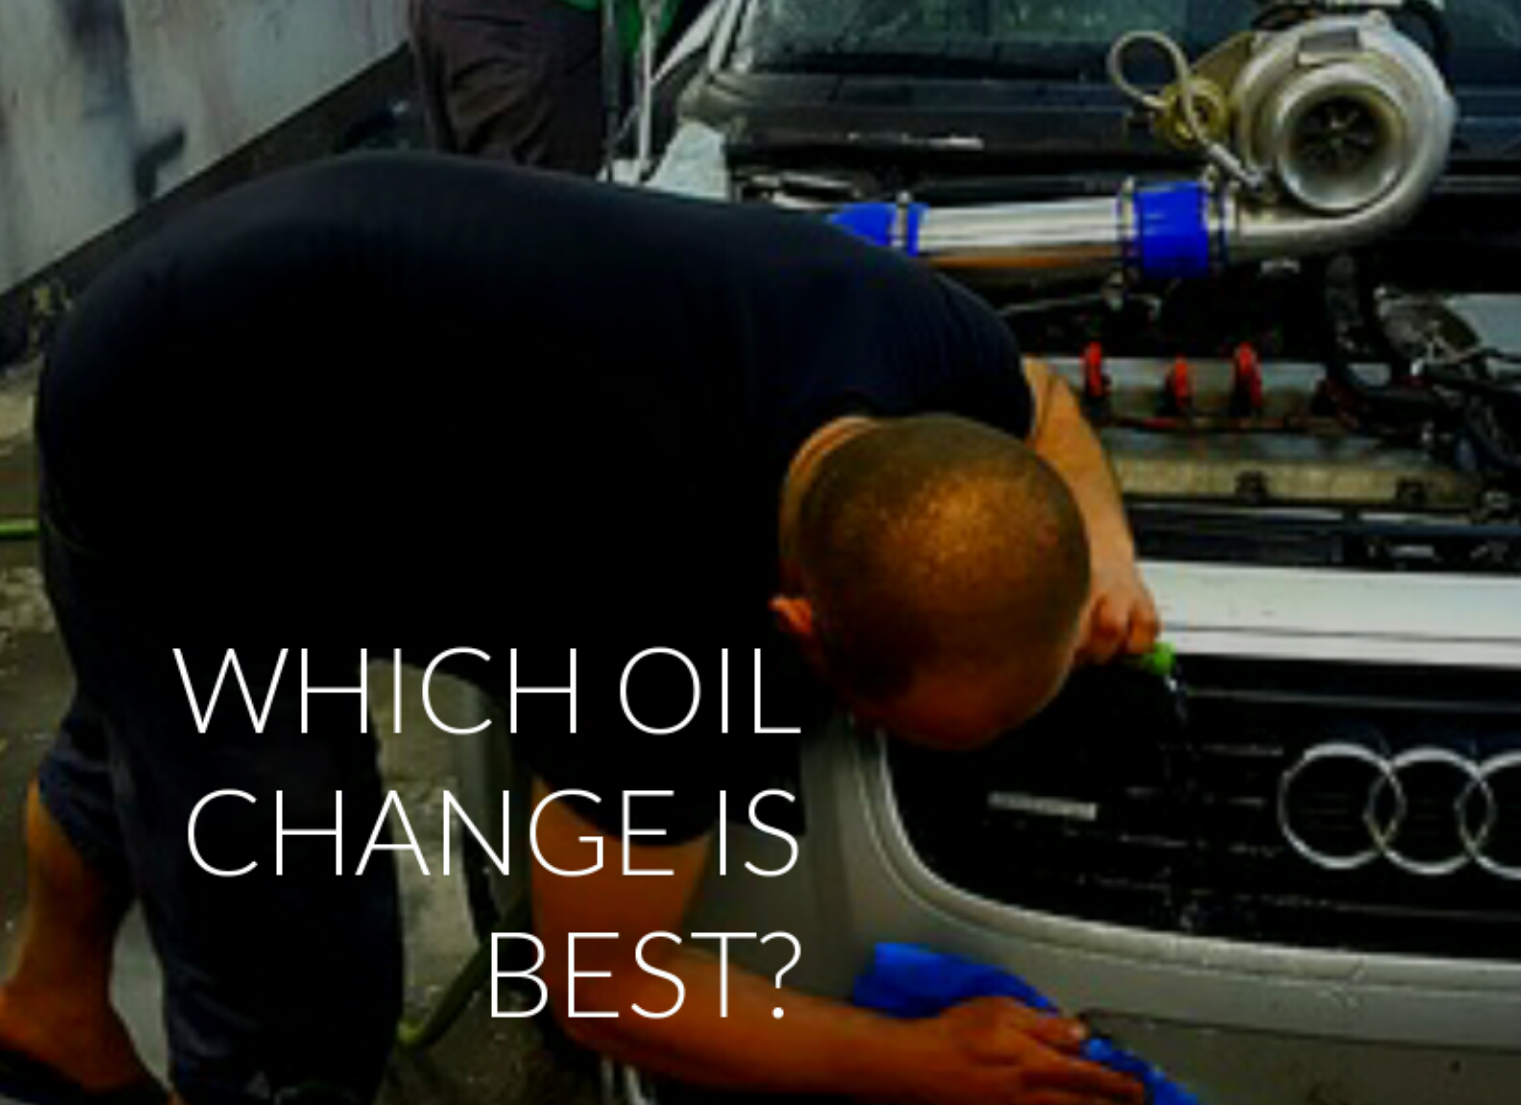 Best Place For Oil Change >> Which Oil Change Is Best All In The Wrist Albuquerque